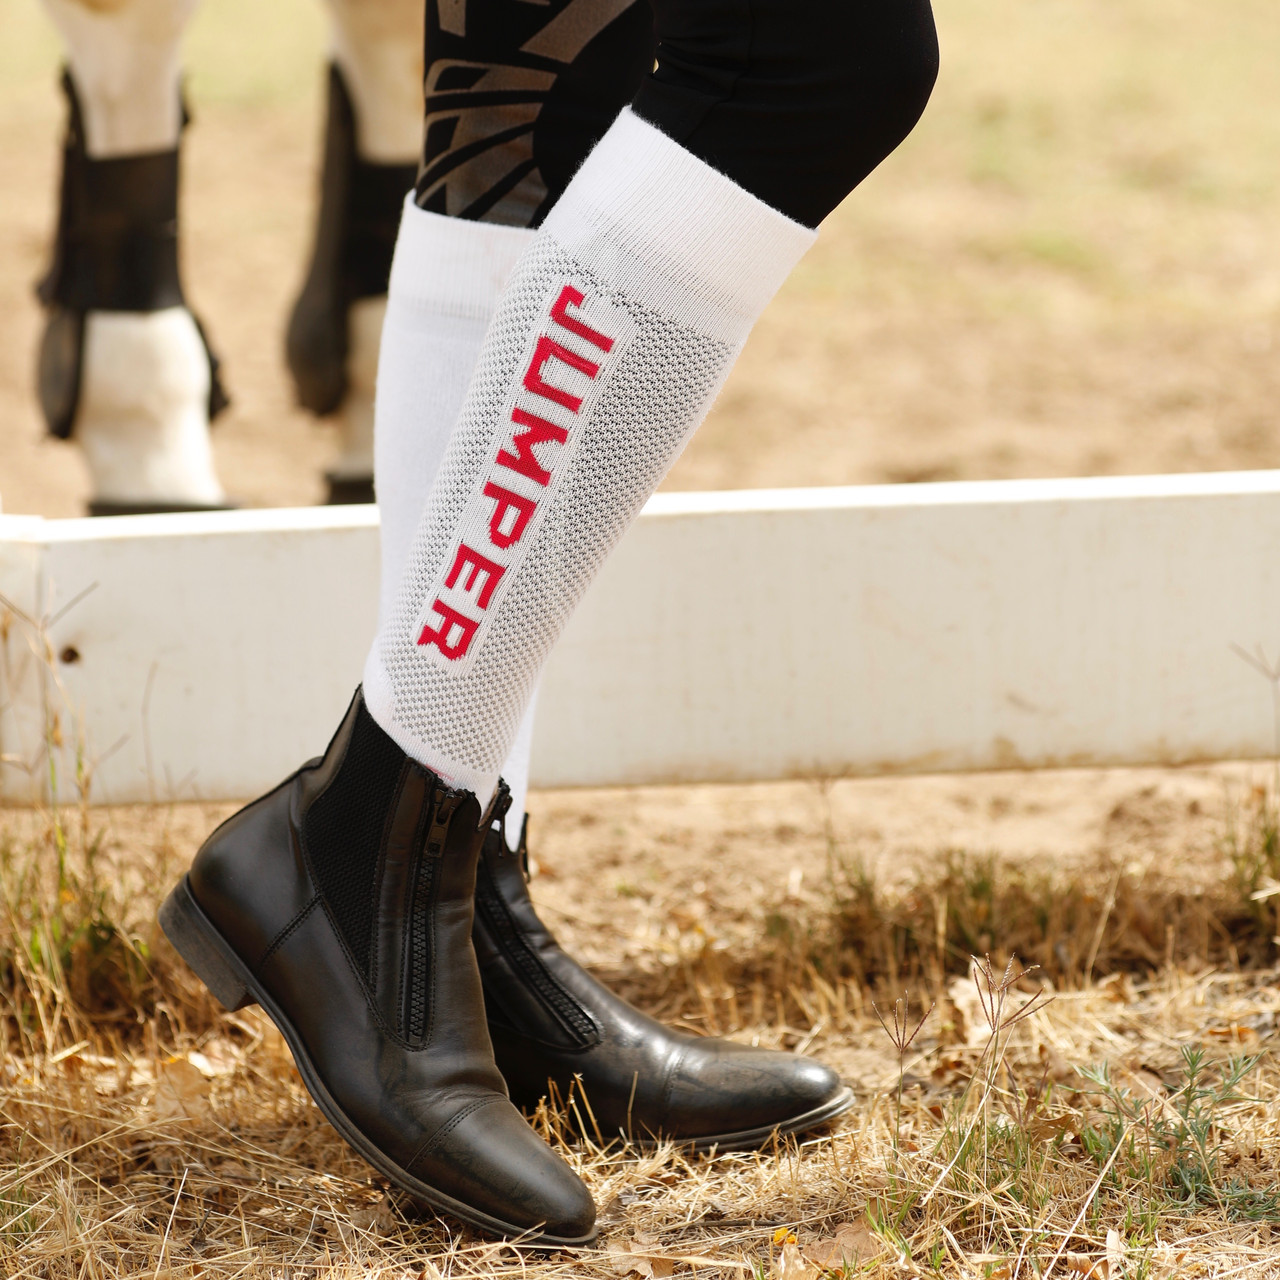 Foot Huggies for Life equestrian